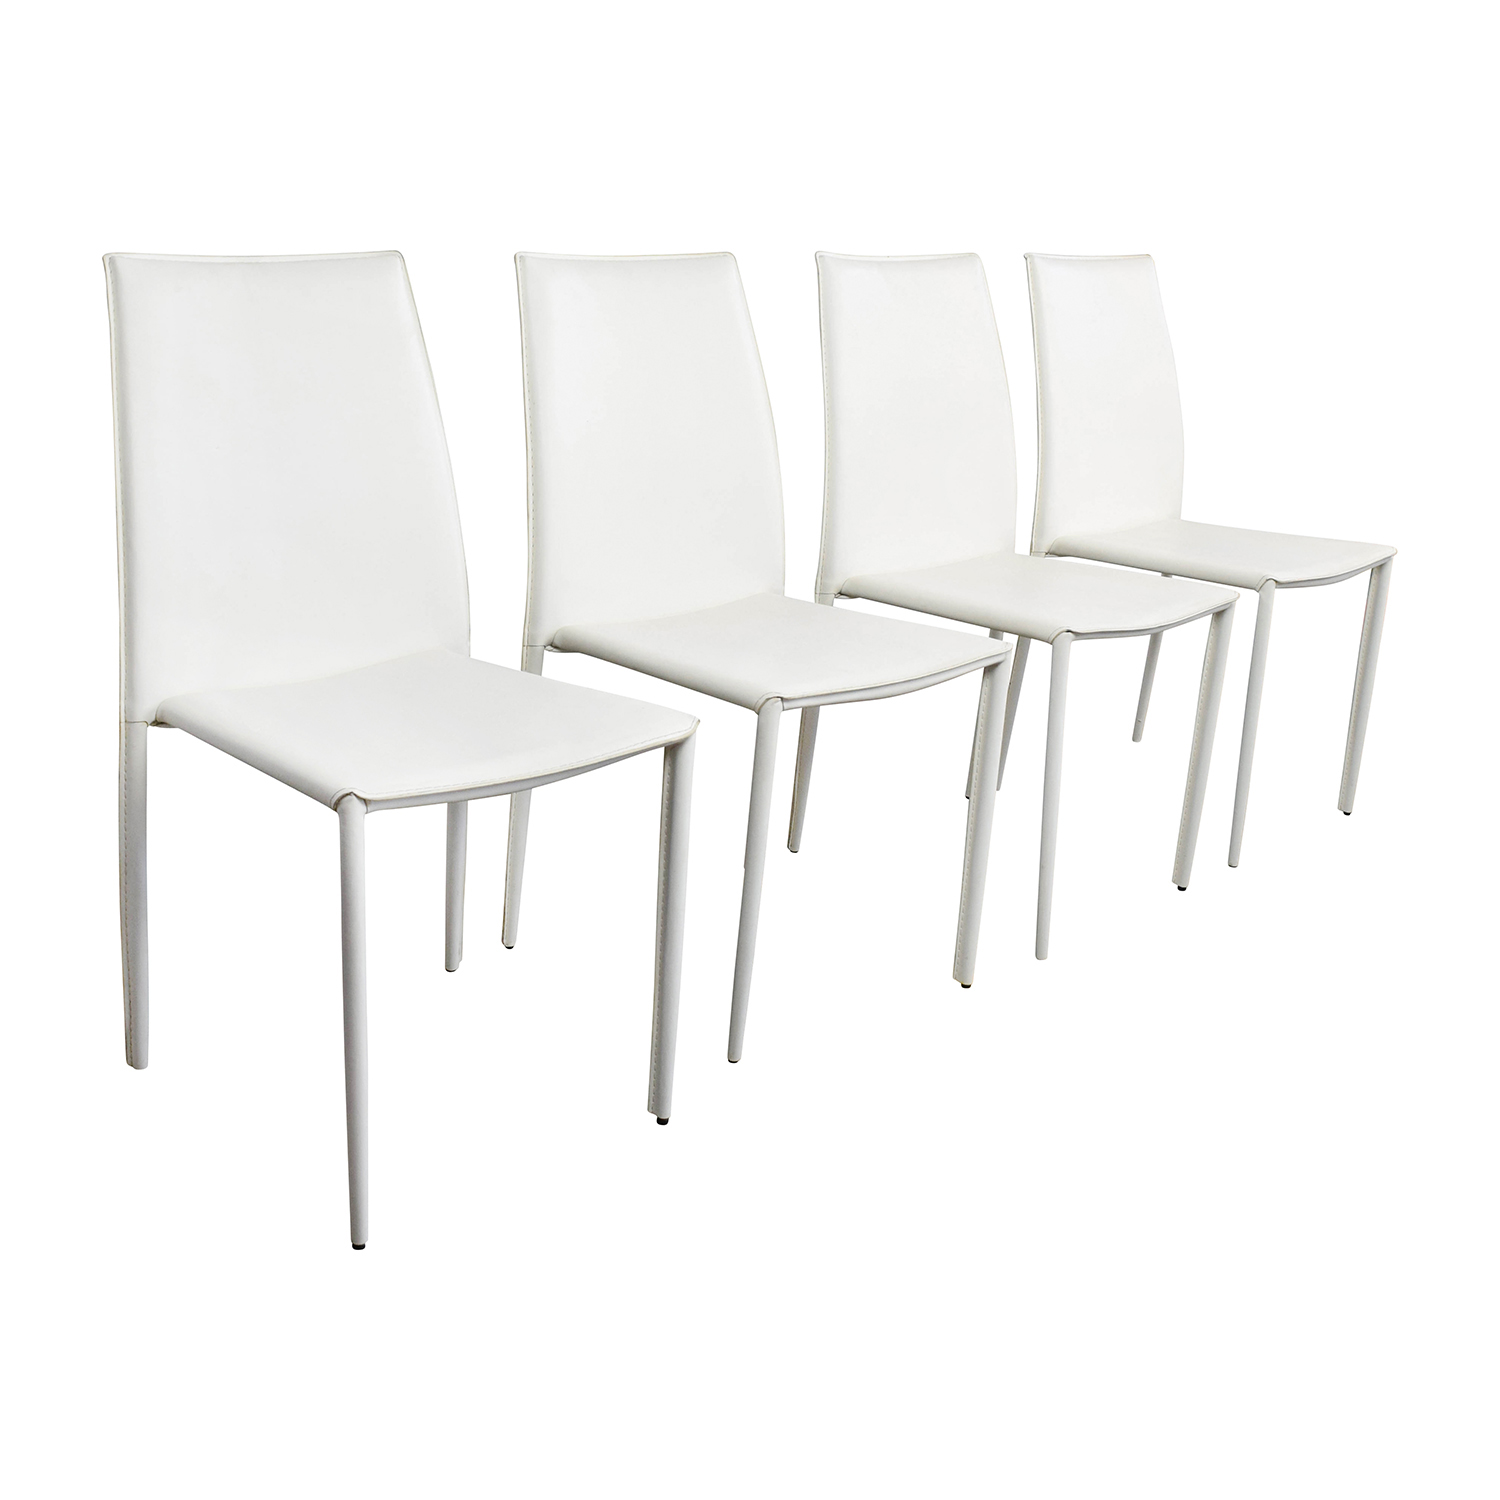 Popular 225 list modern white dining chairs for Contemporary white dining chairs